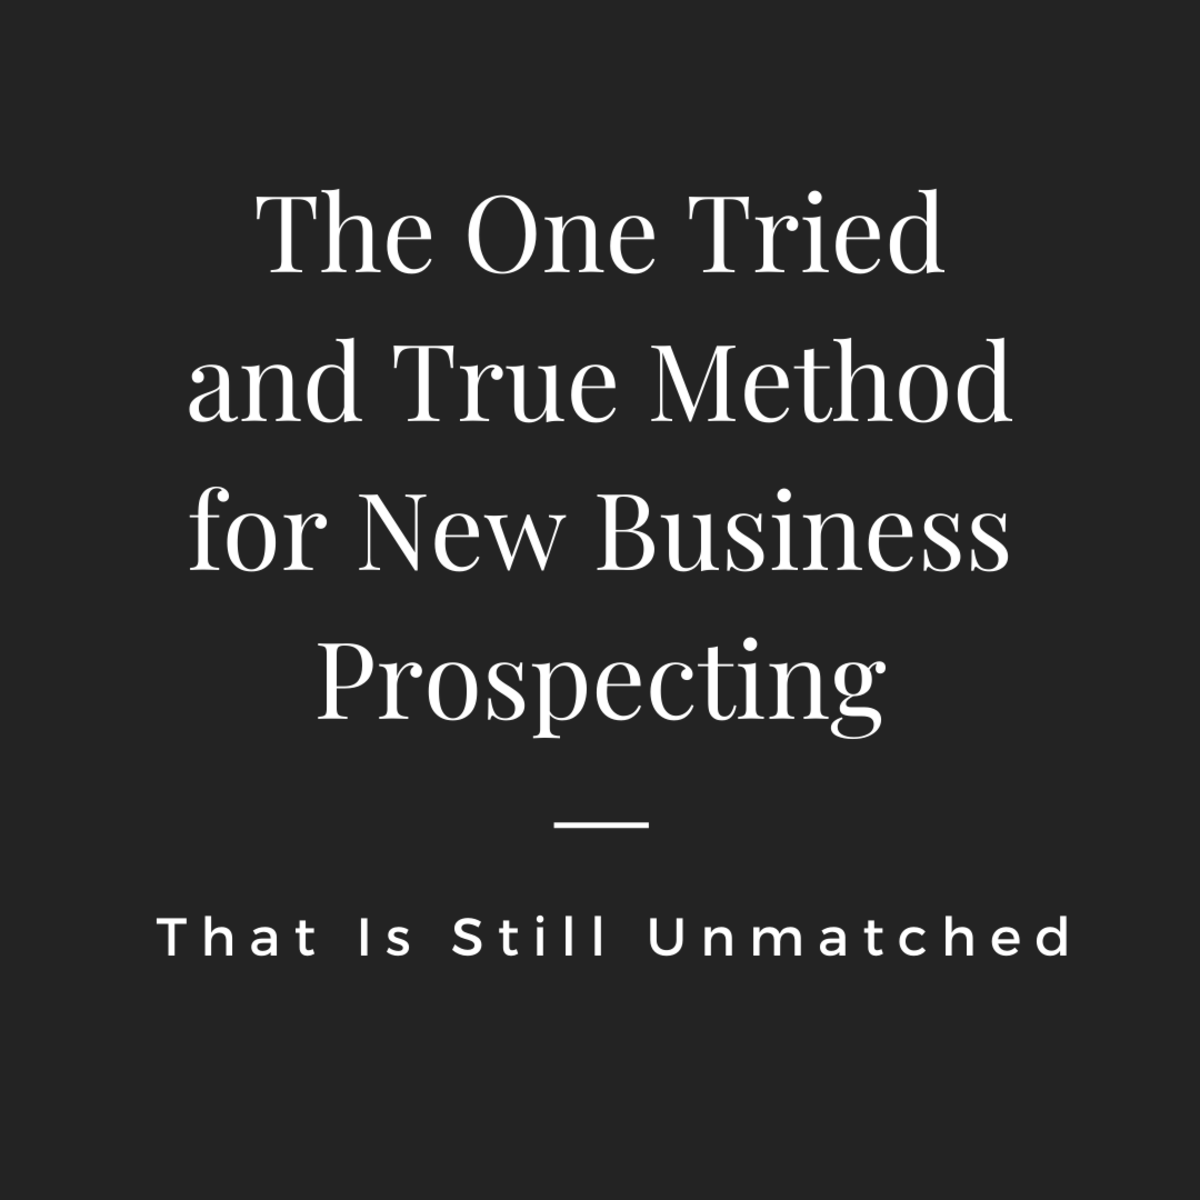 The One Tried and True Method for New Business Prospecting That Is Still Unmatched